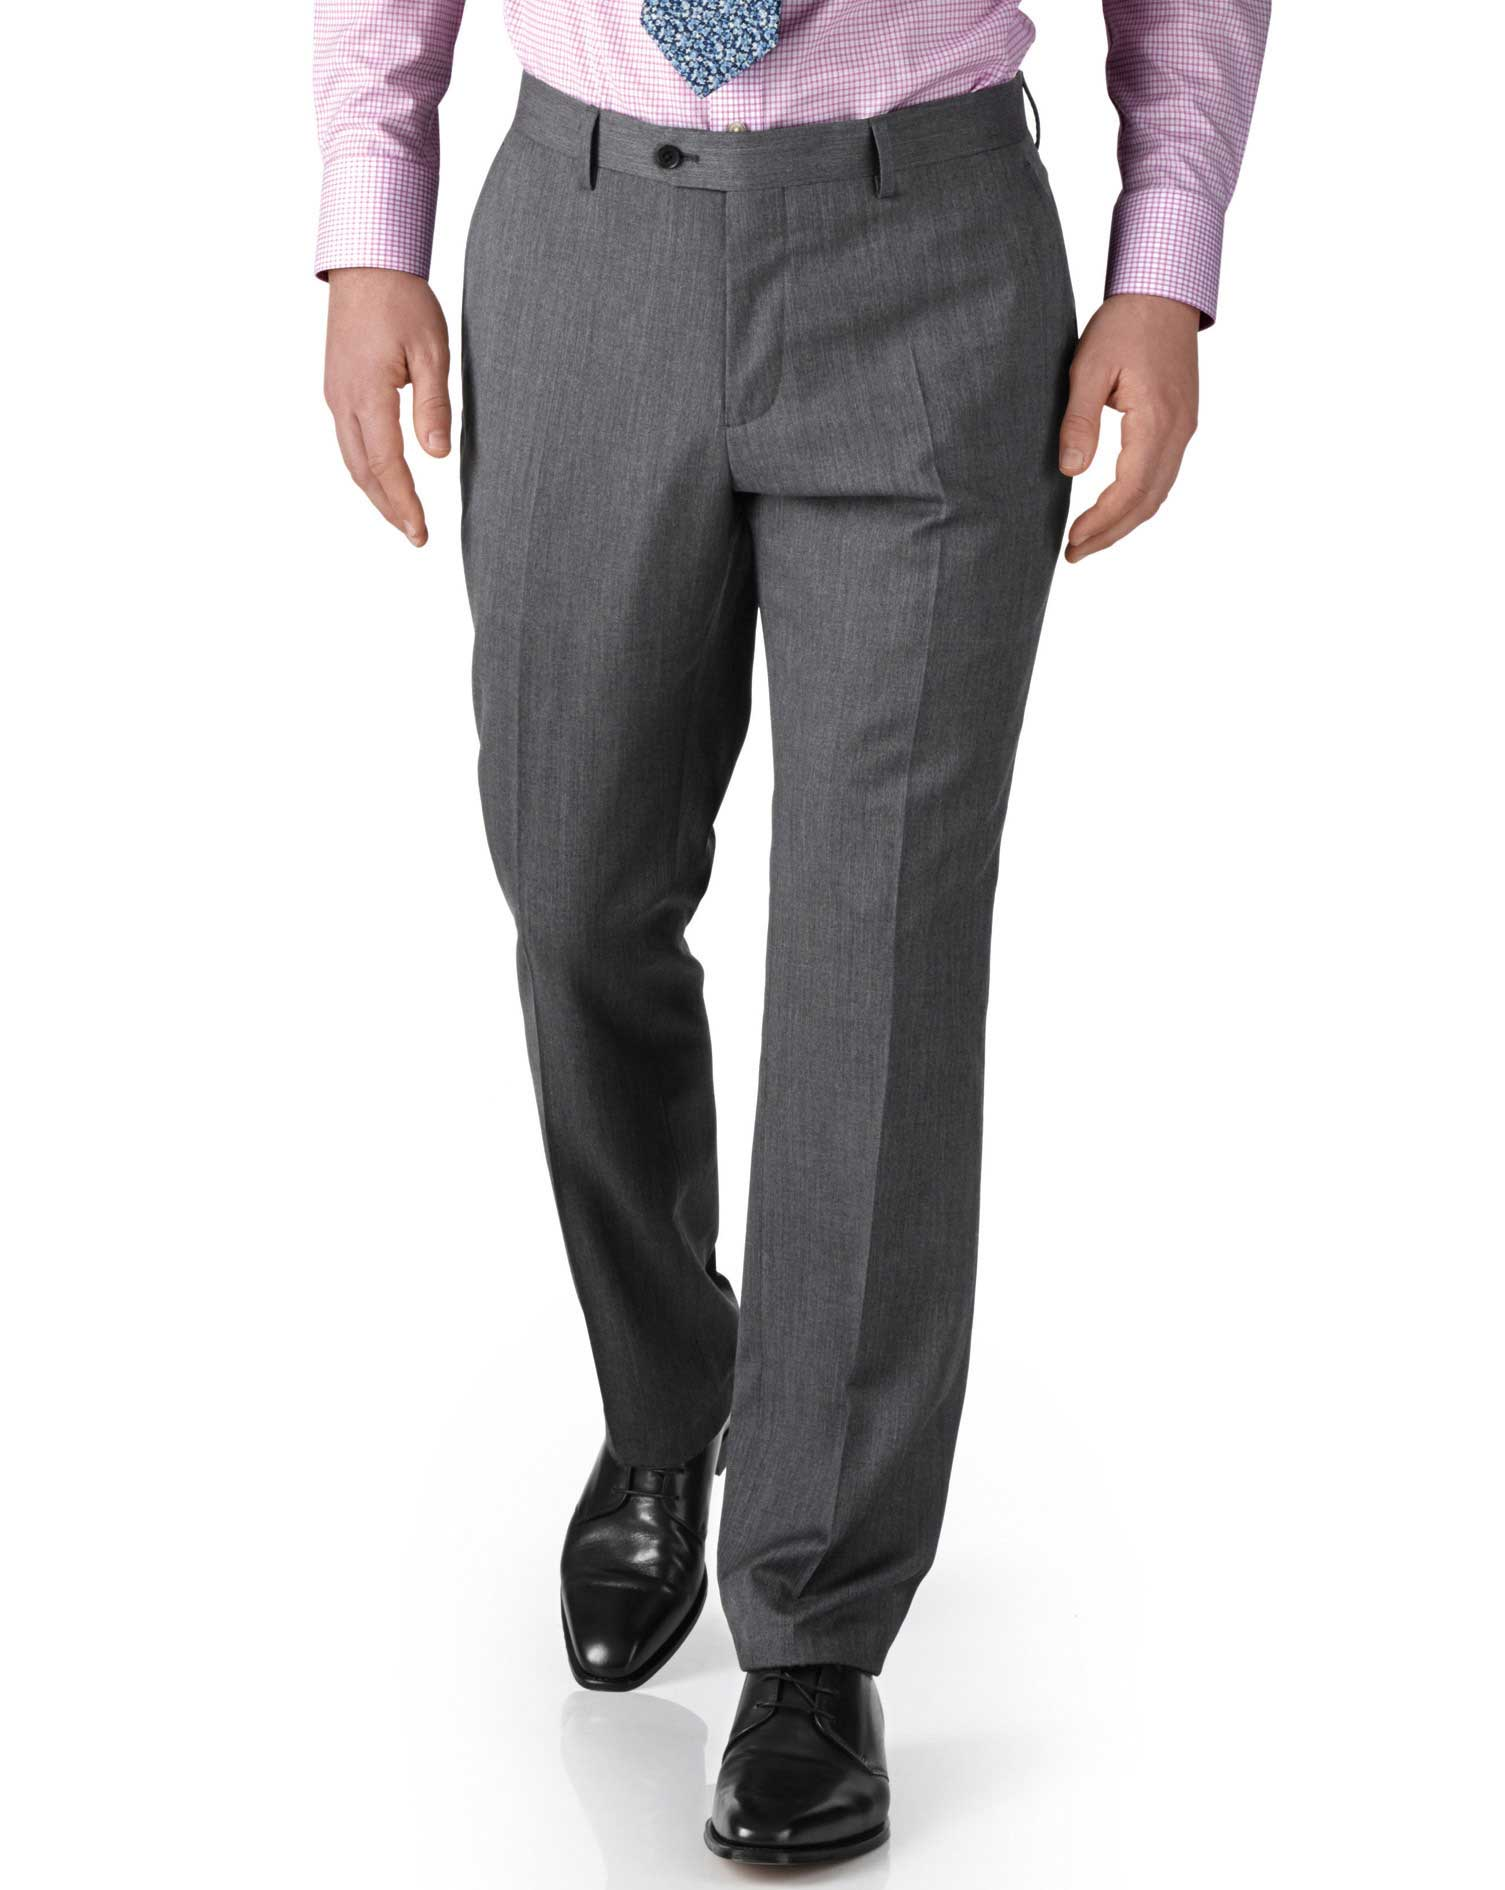 Silver Slim Fit Twill Business Suit Trousers Size W40 L32 by Charles Tyrwhitt